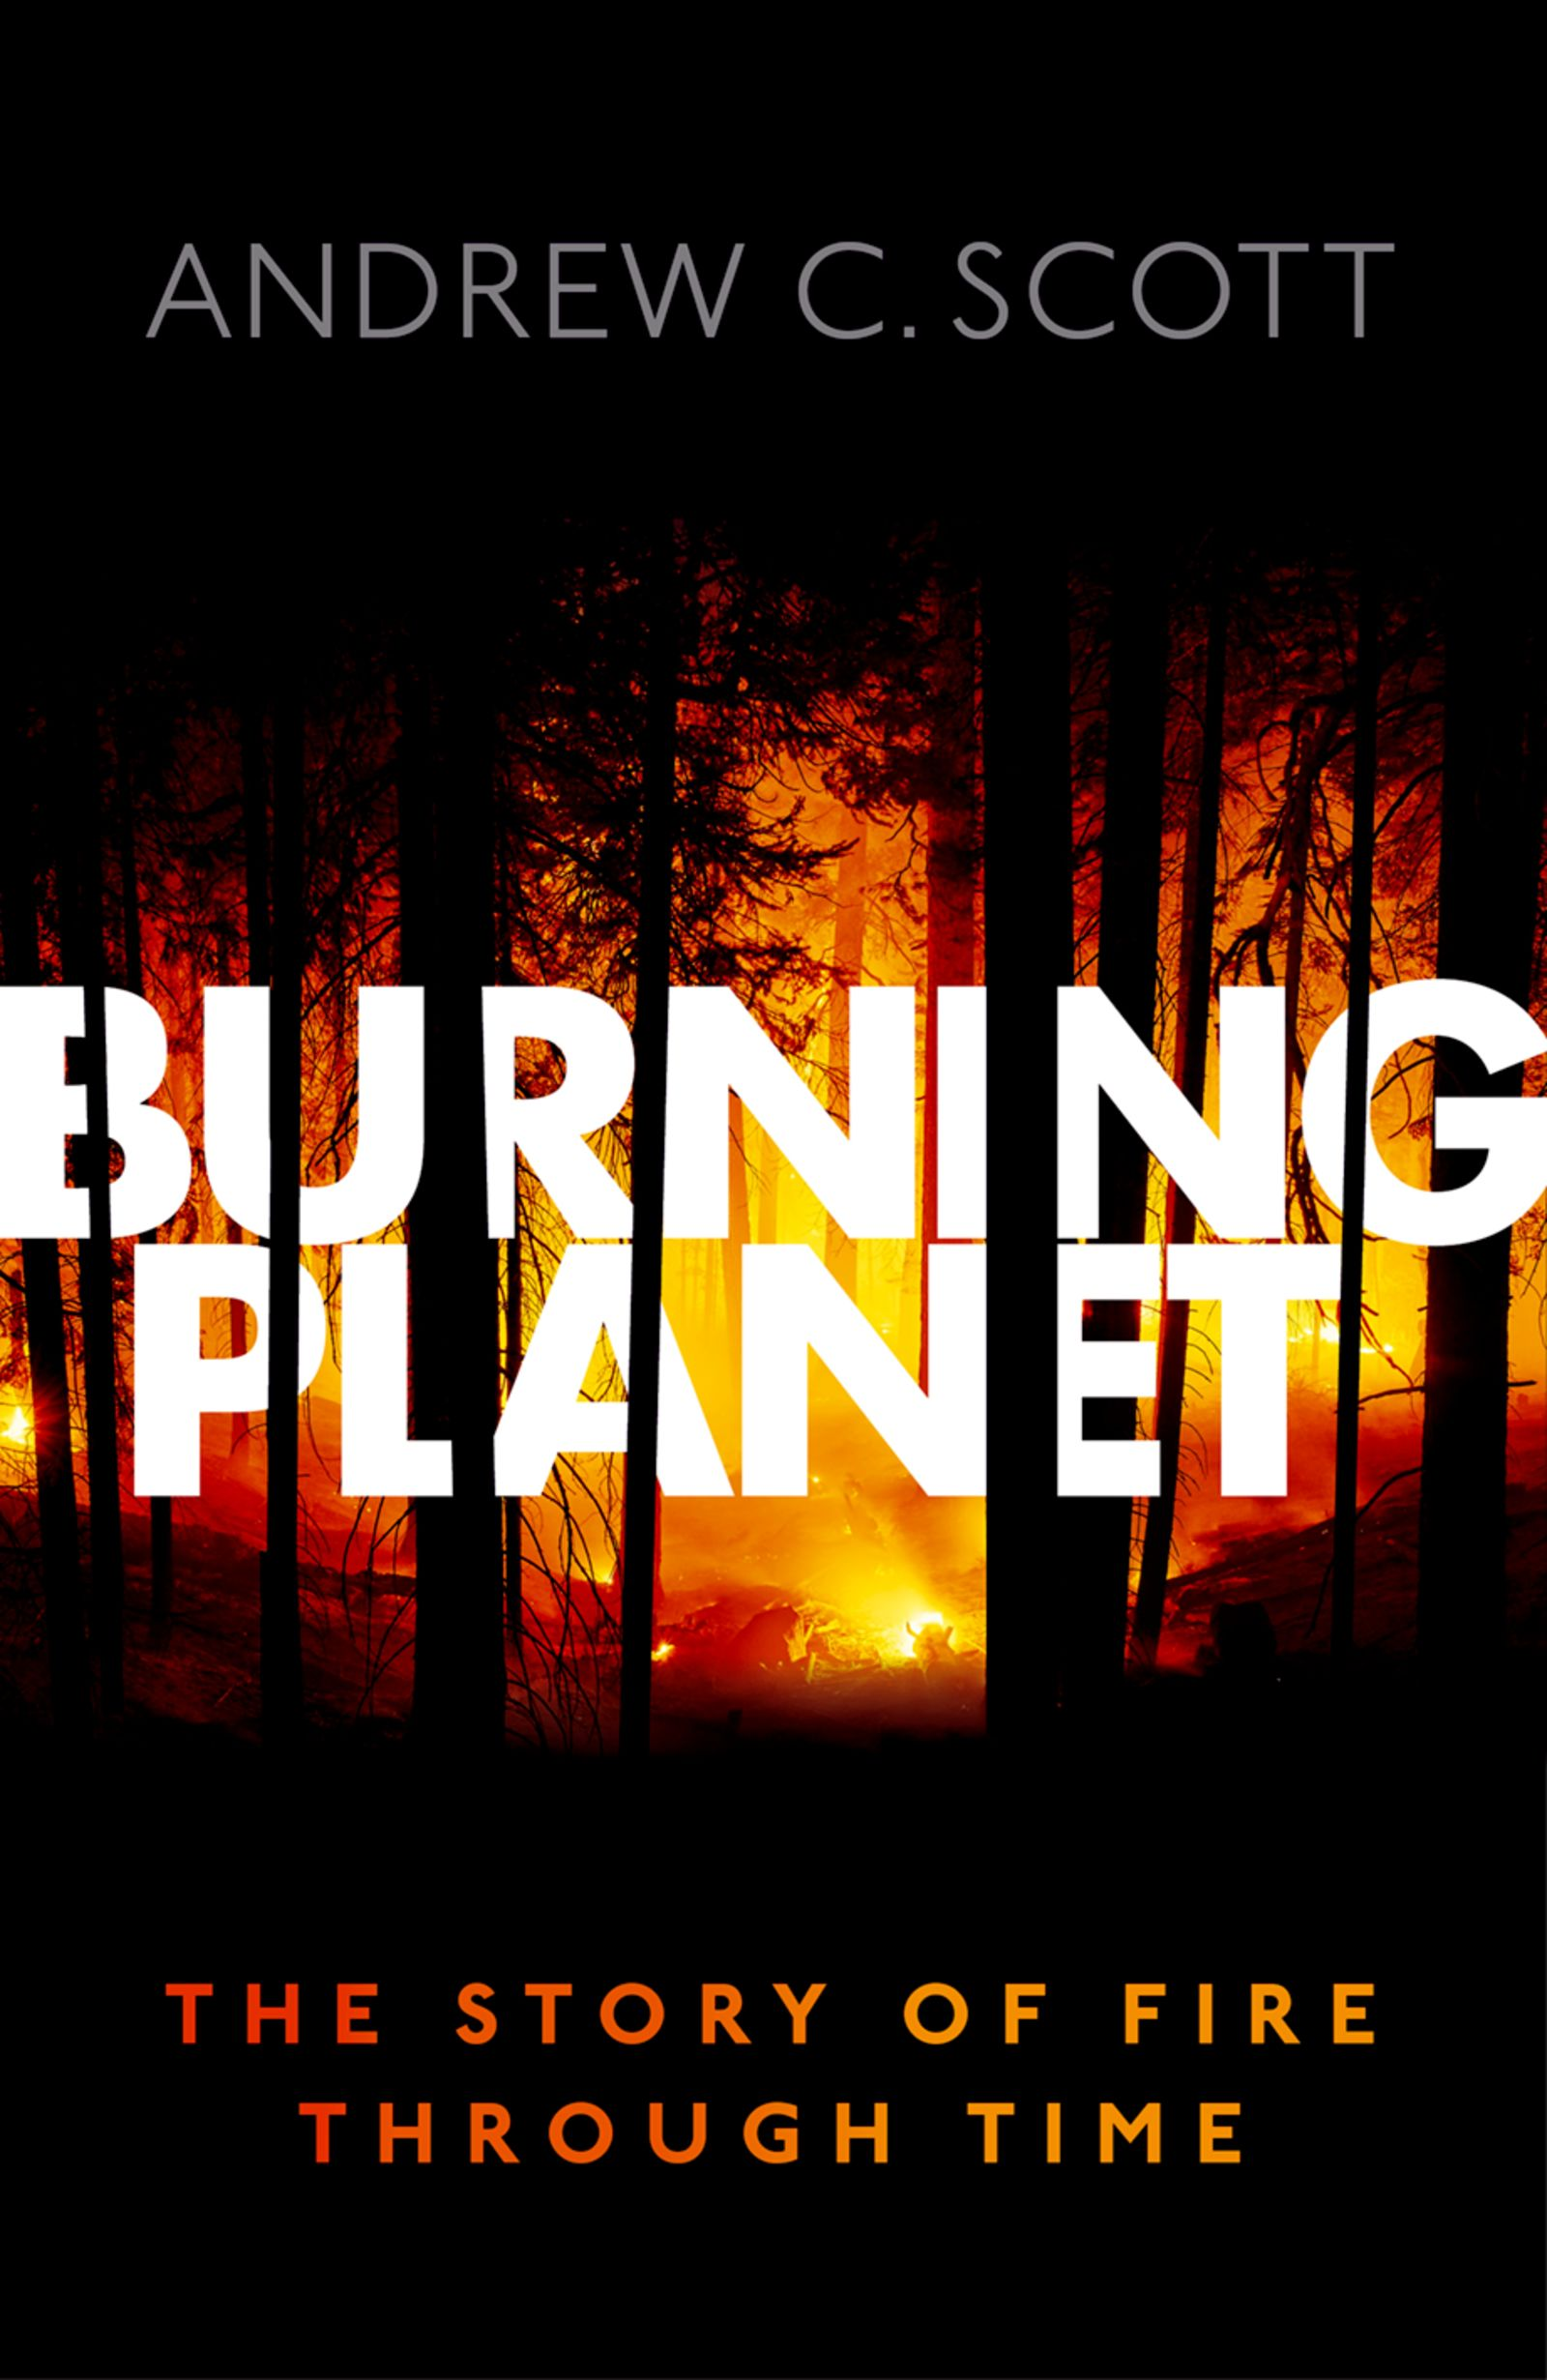 Burning PlanetThe Story of Fire Through Time